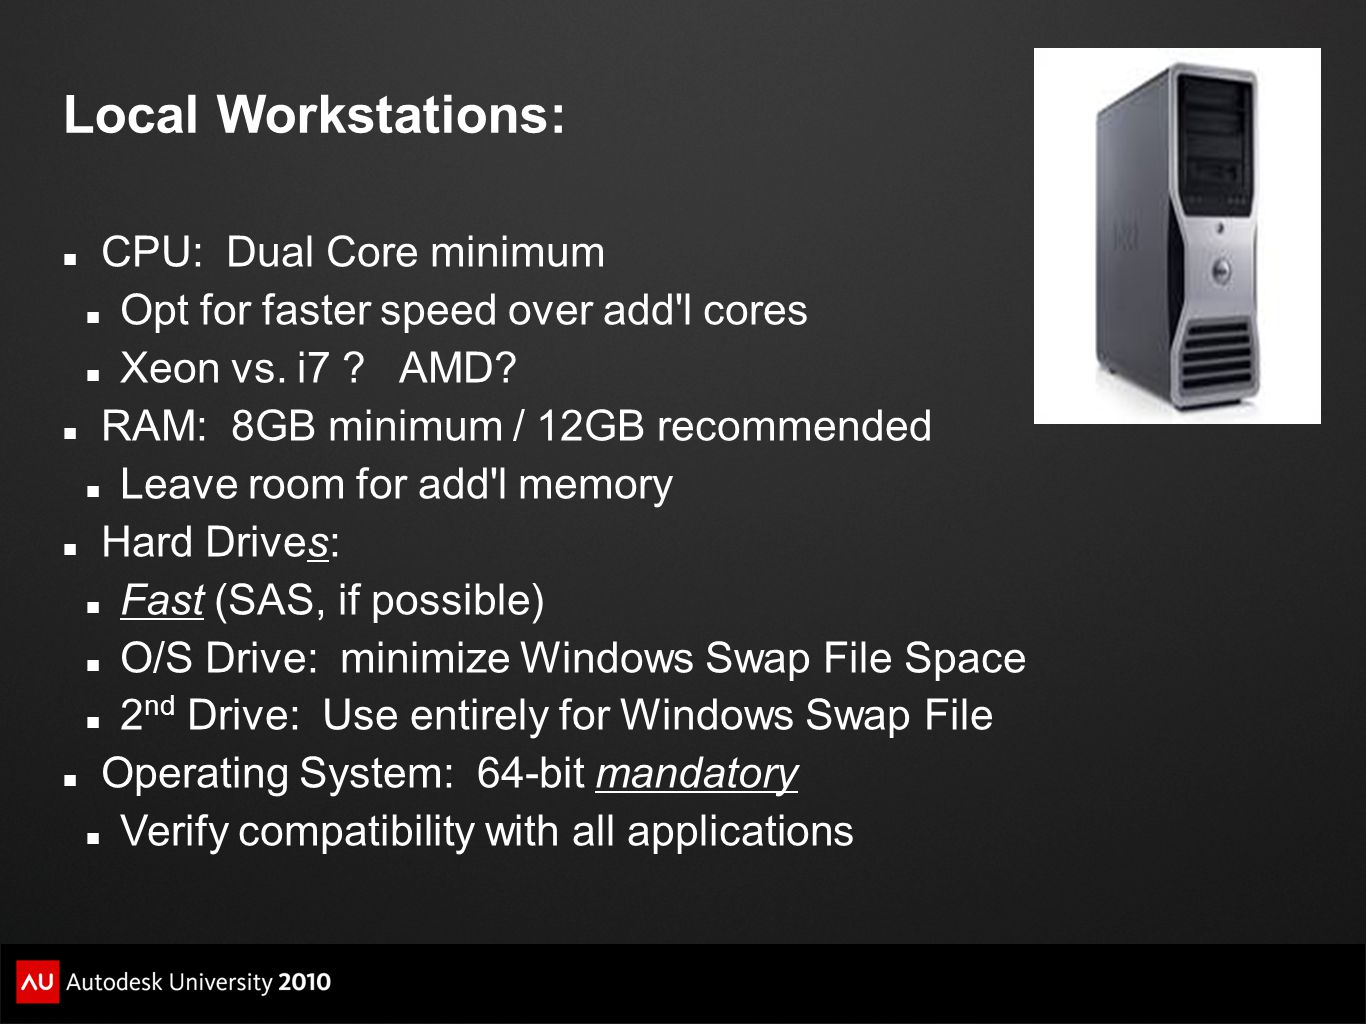 Local Workstations: CPU: Dual Core minimum Opt for faster speed over add l cores Xeon vs.